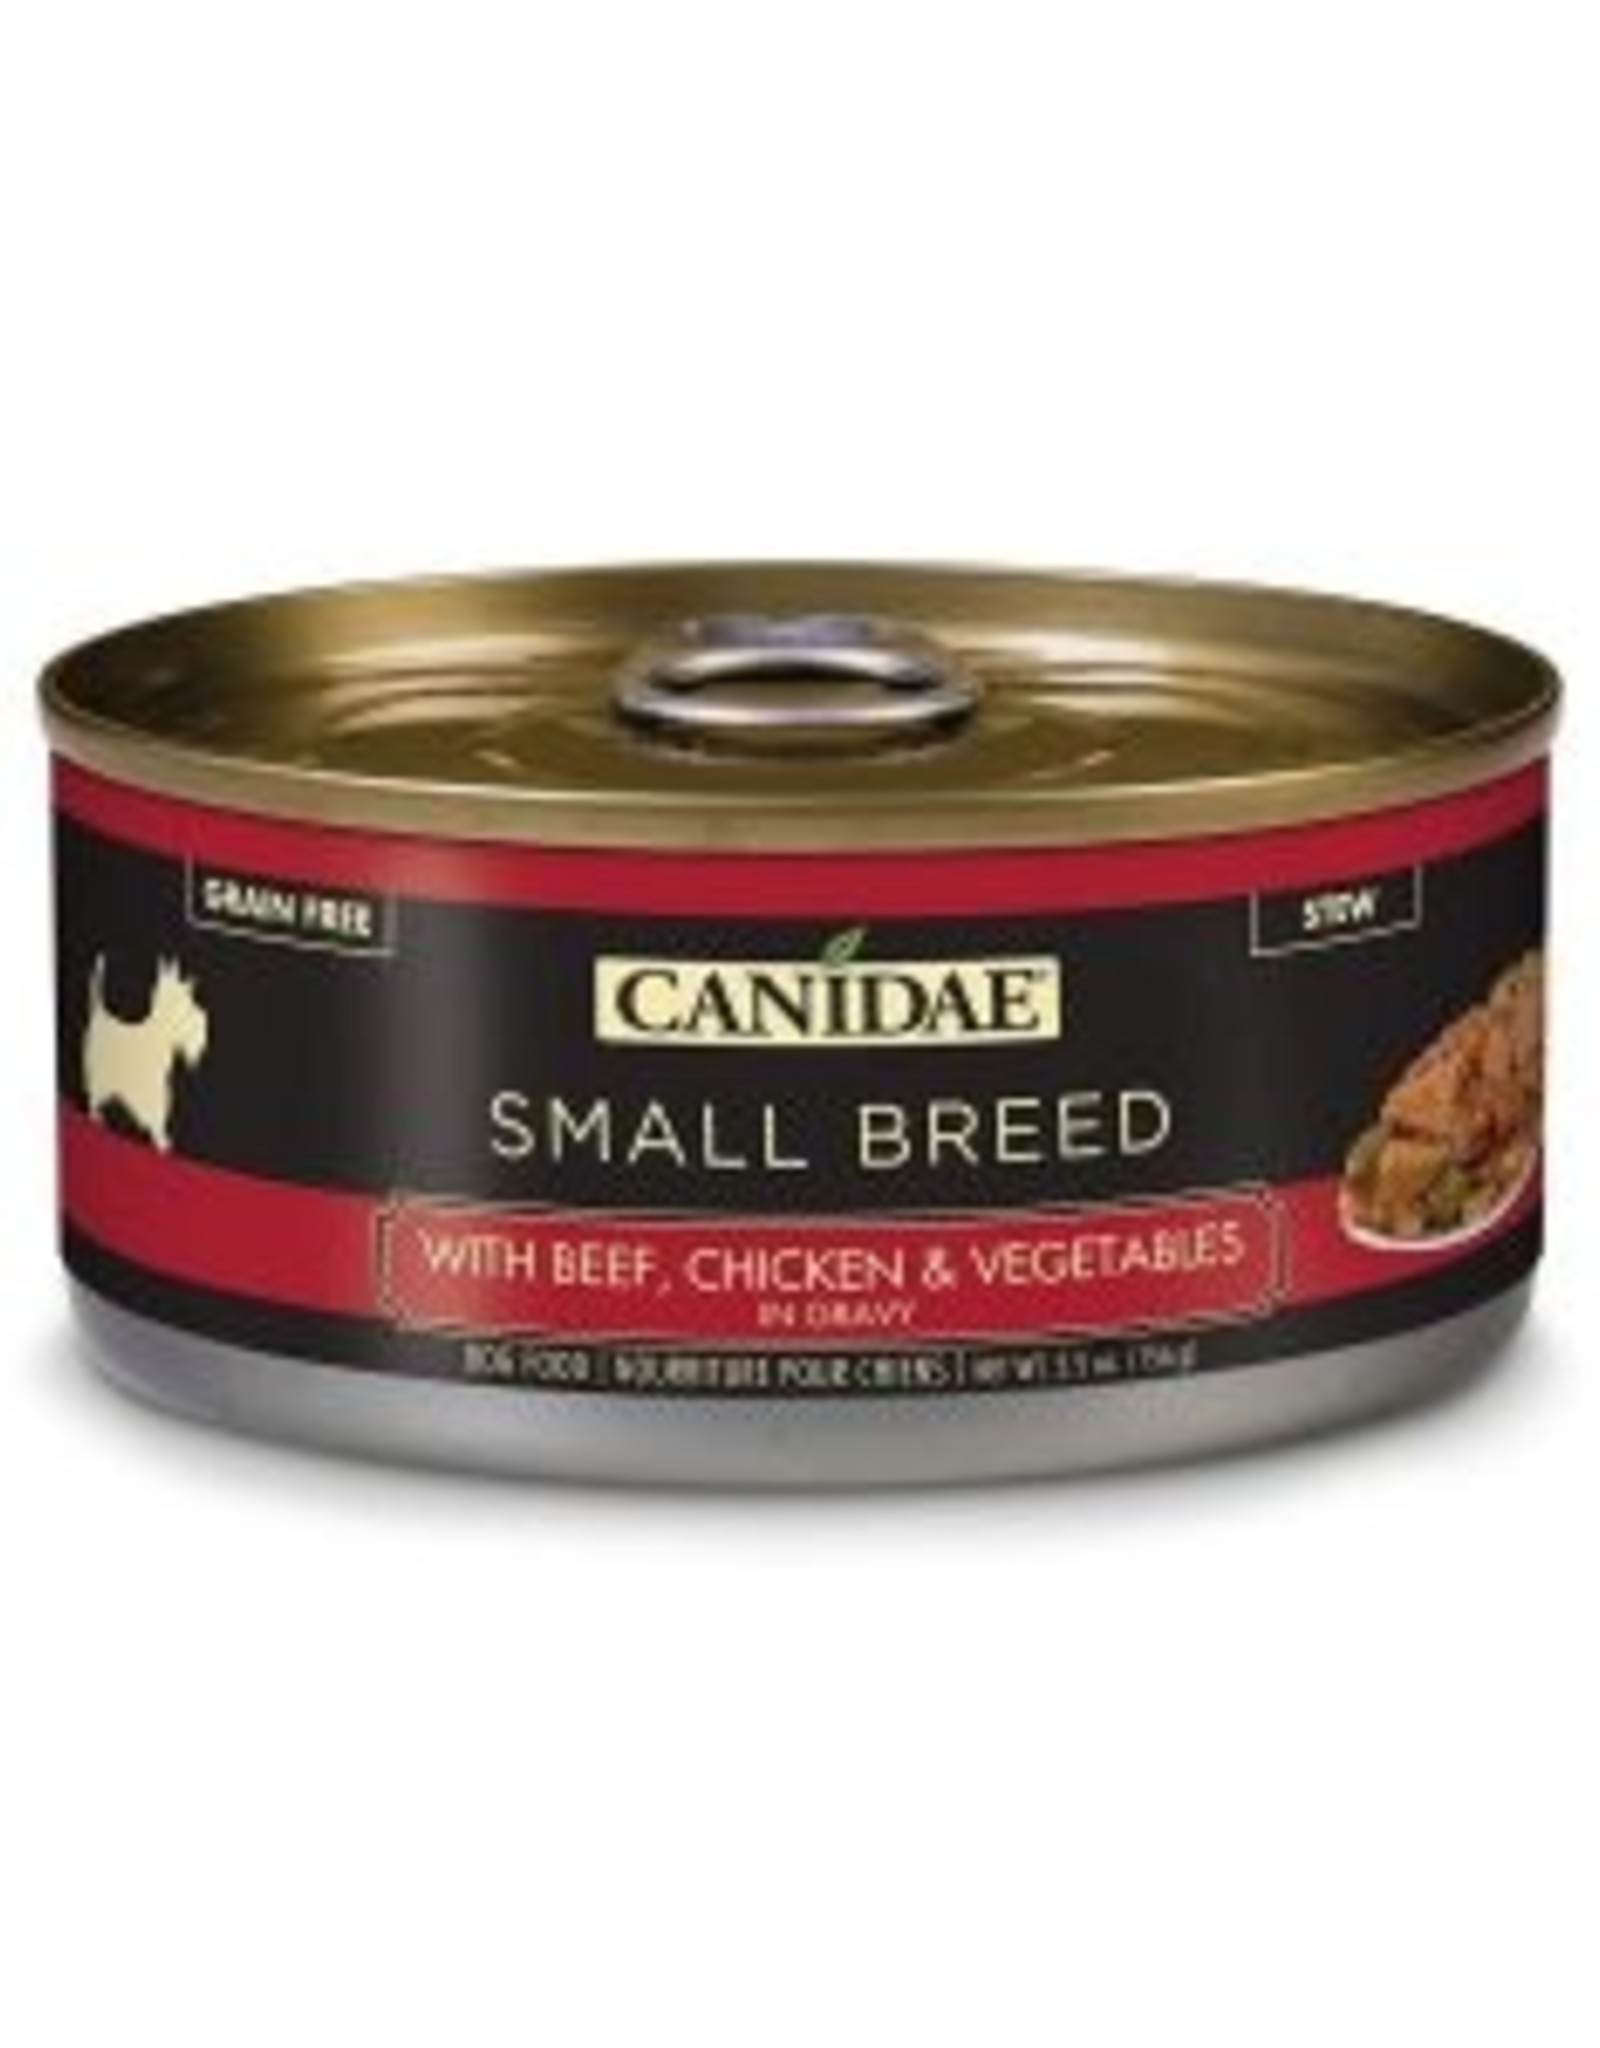 CANIDAE PET FOODS CANIDAE CAN DOG SMALL BREED BEEF, CHICKEN & VEGETABLES IN GRAVY 5.5OZ